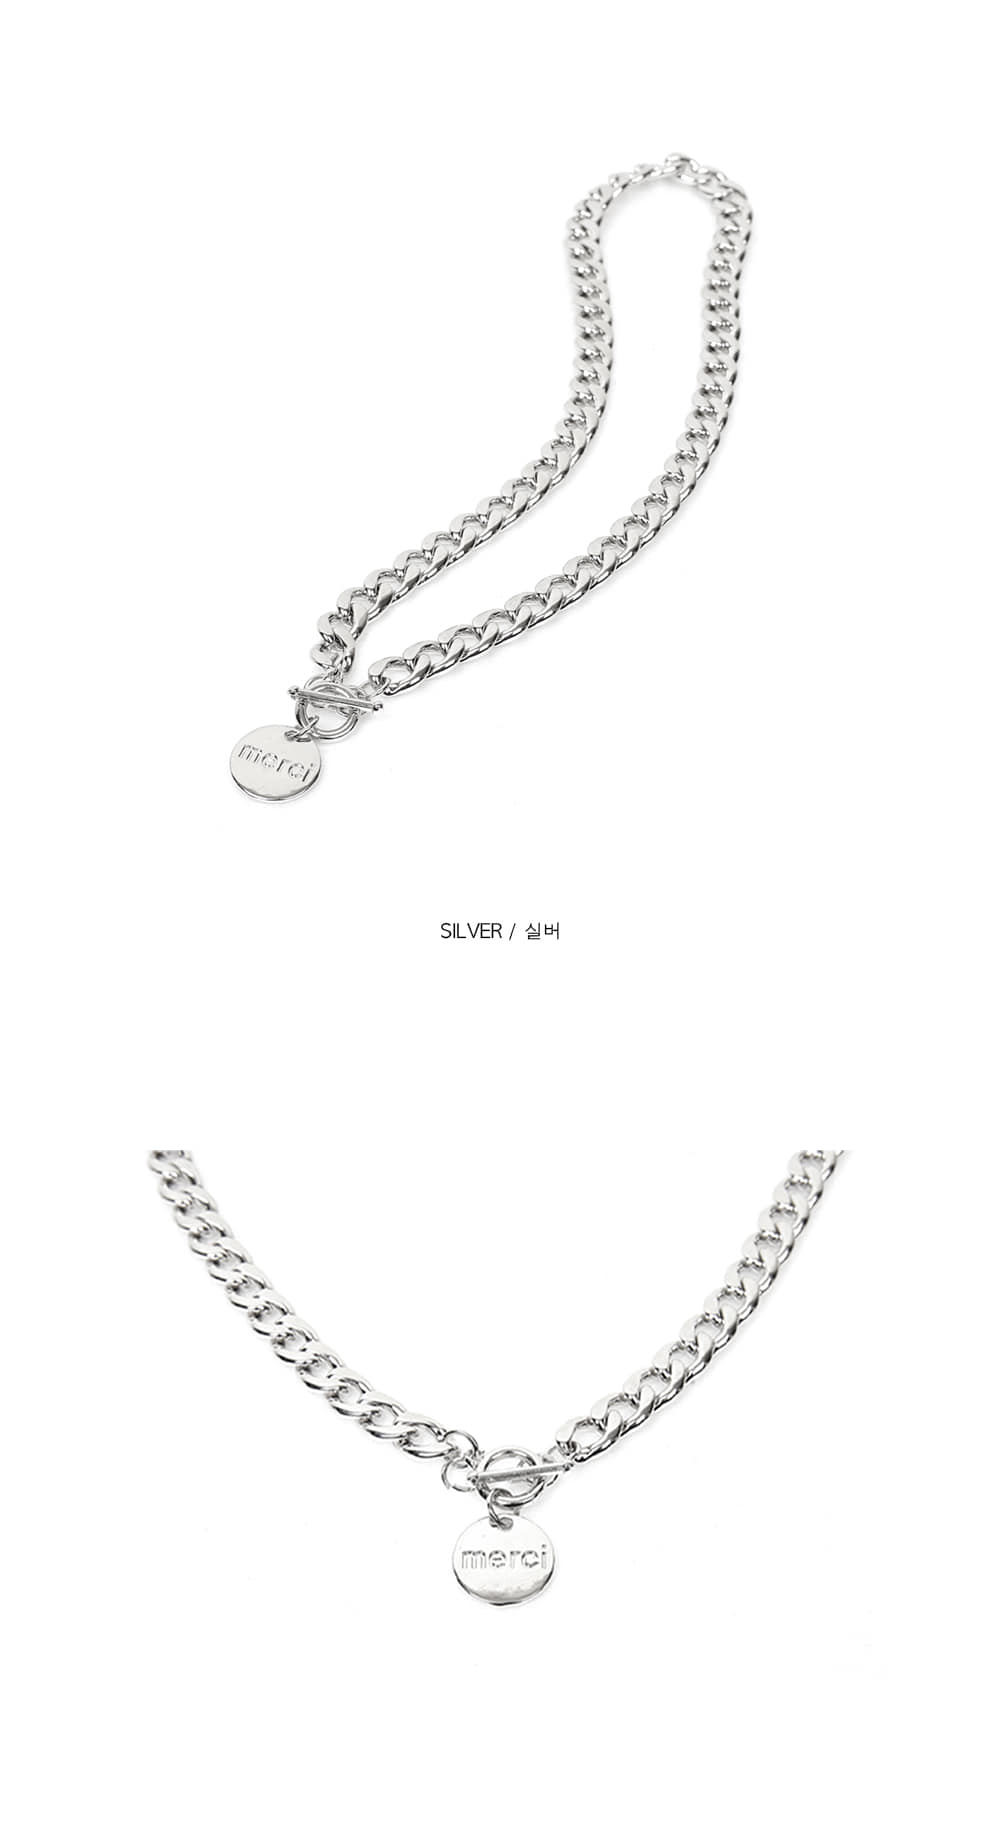 merci chain necklace